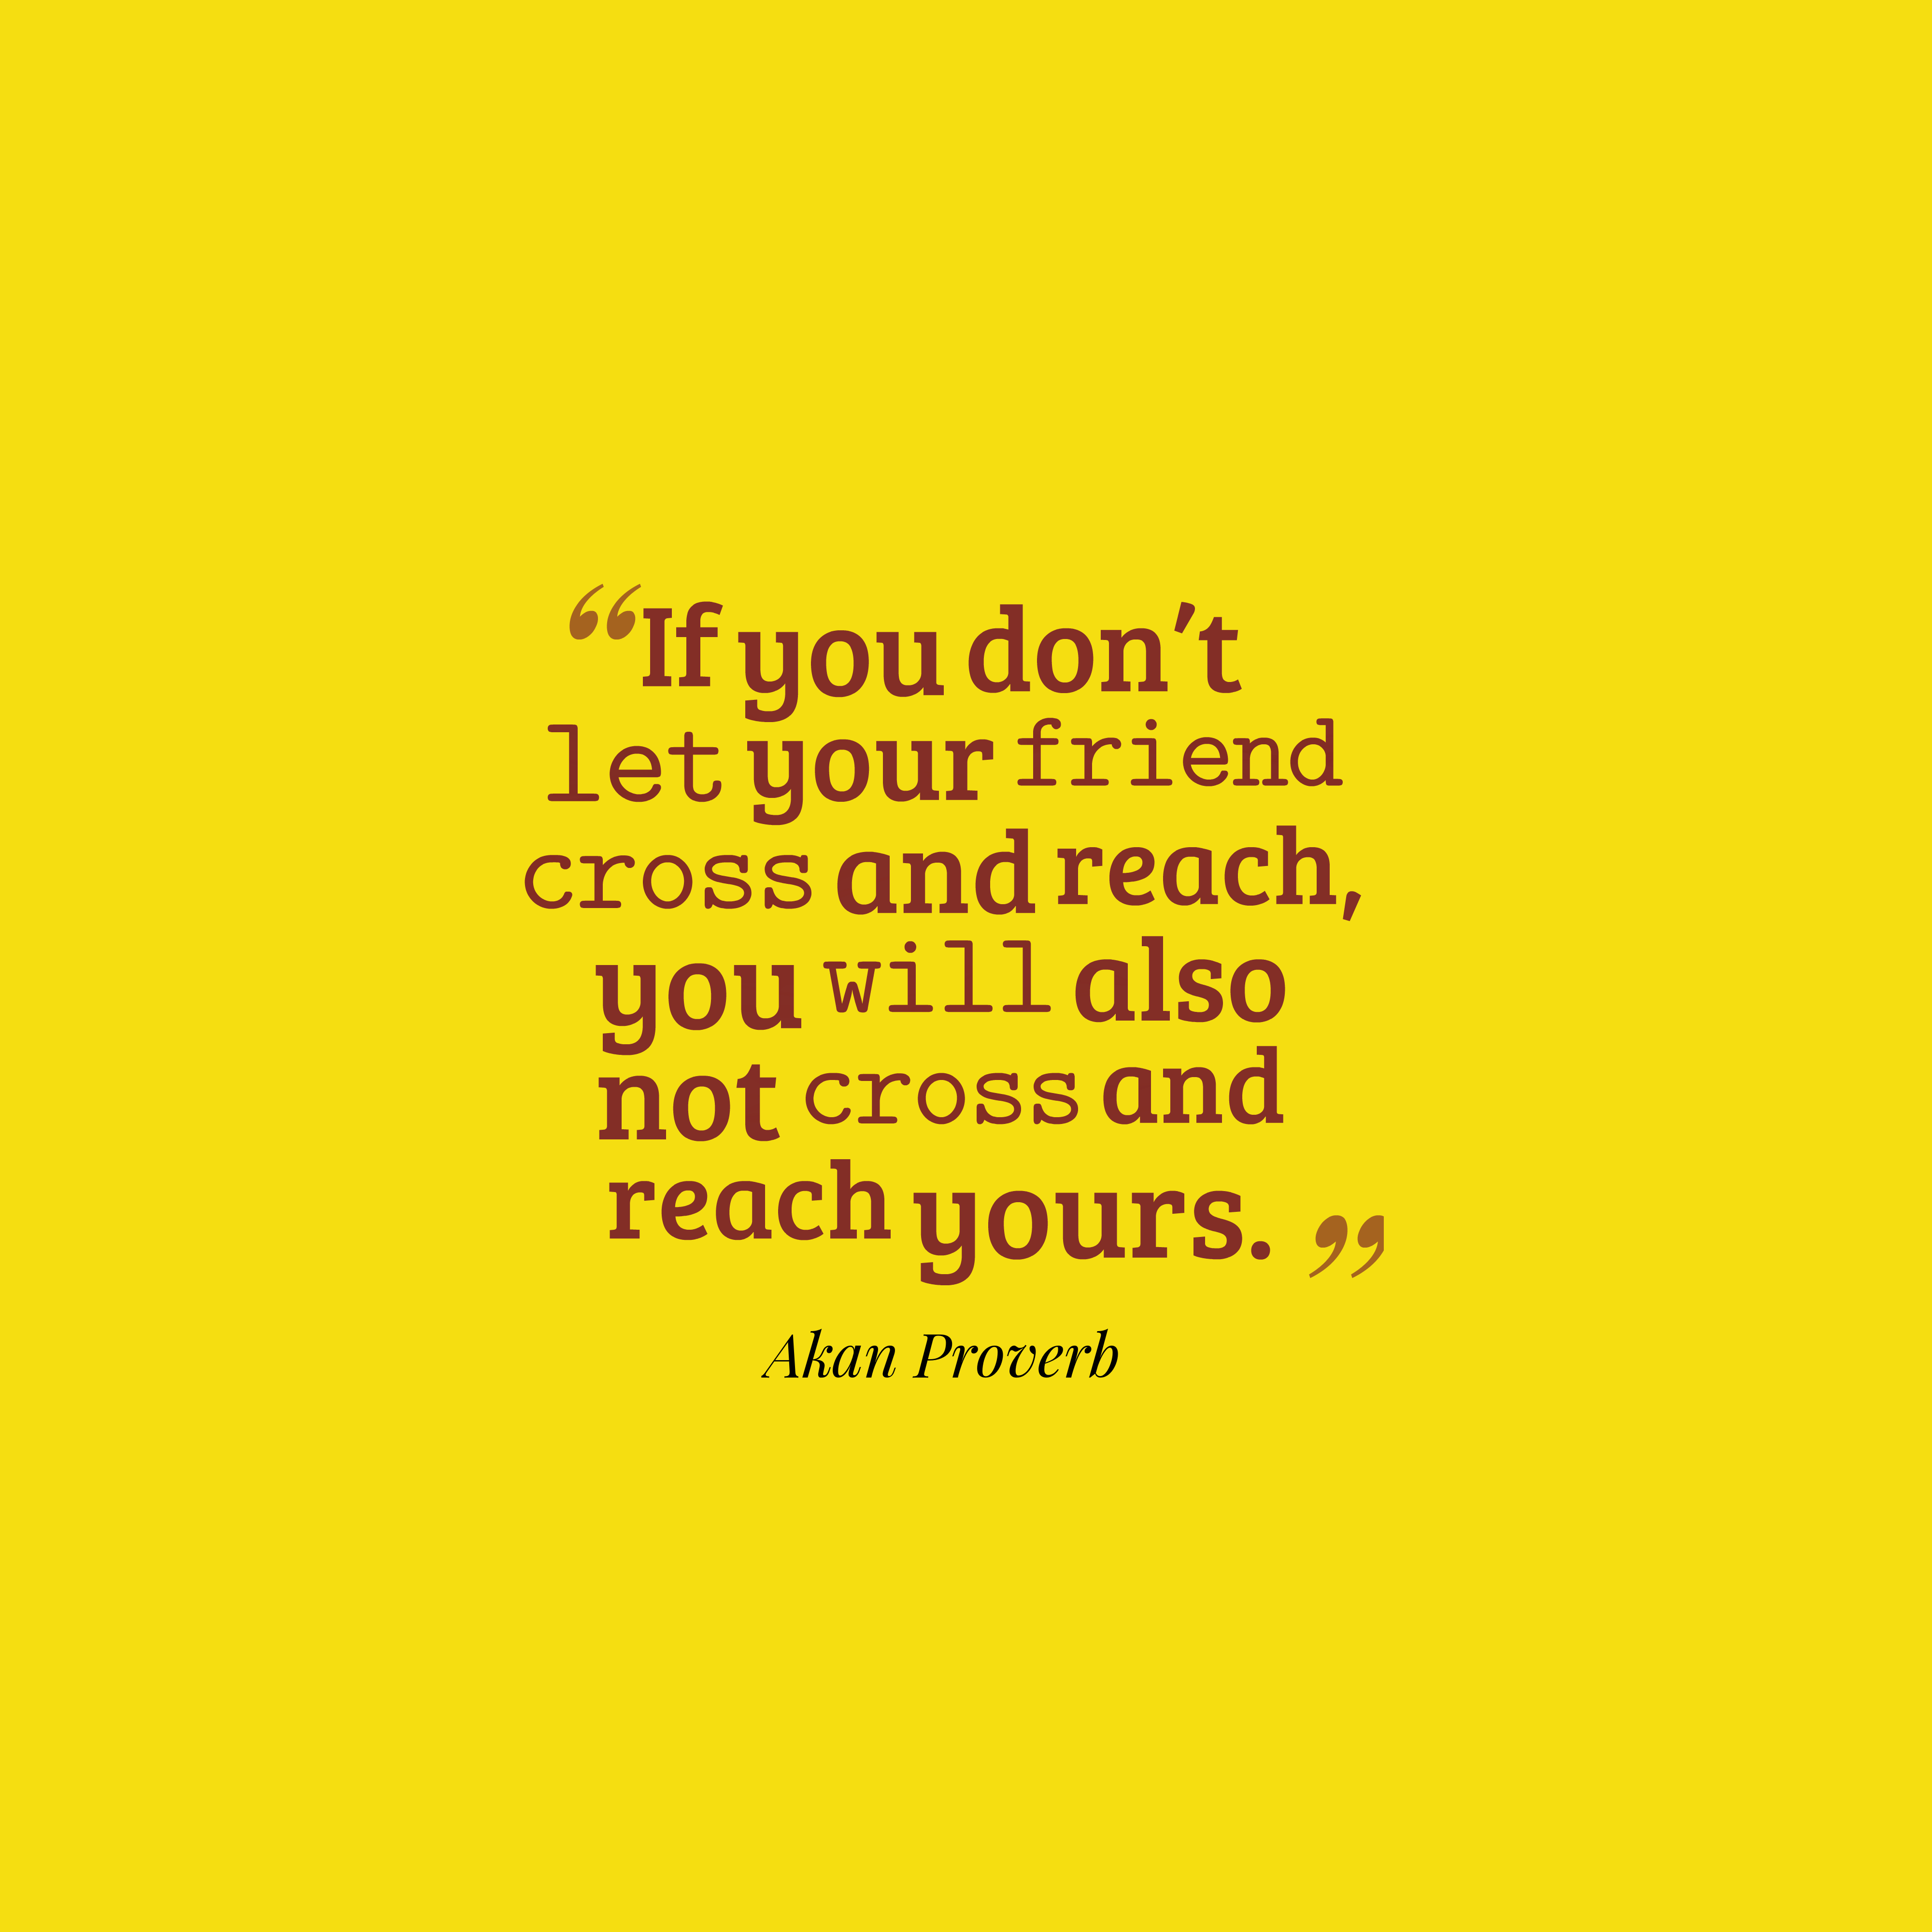 Quotes image of If you don't let your friend cross and reach, you will also not cross and reach yours.